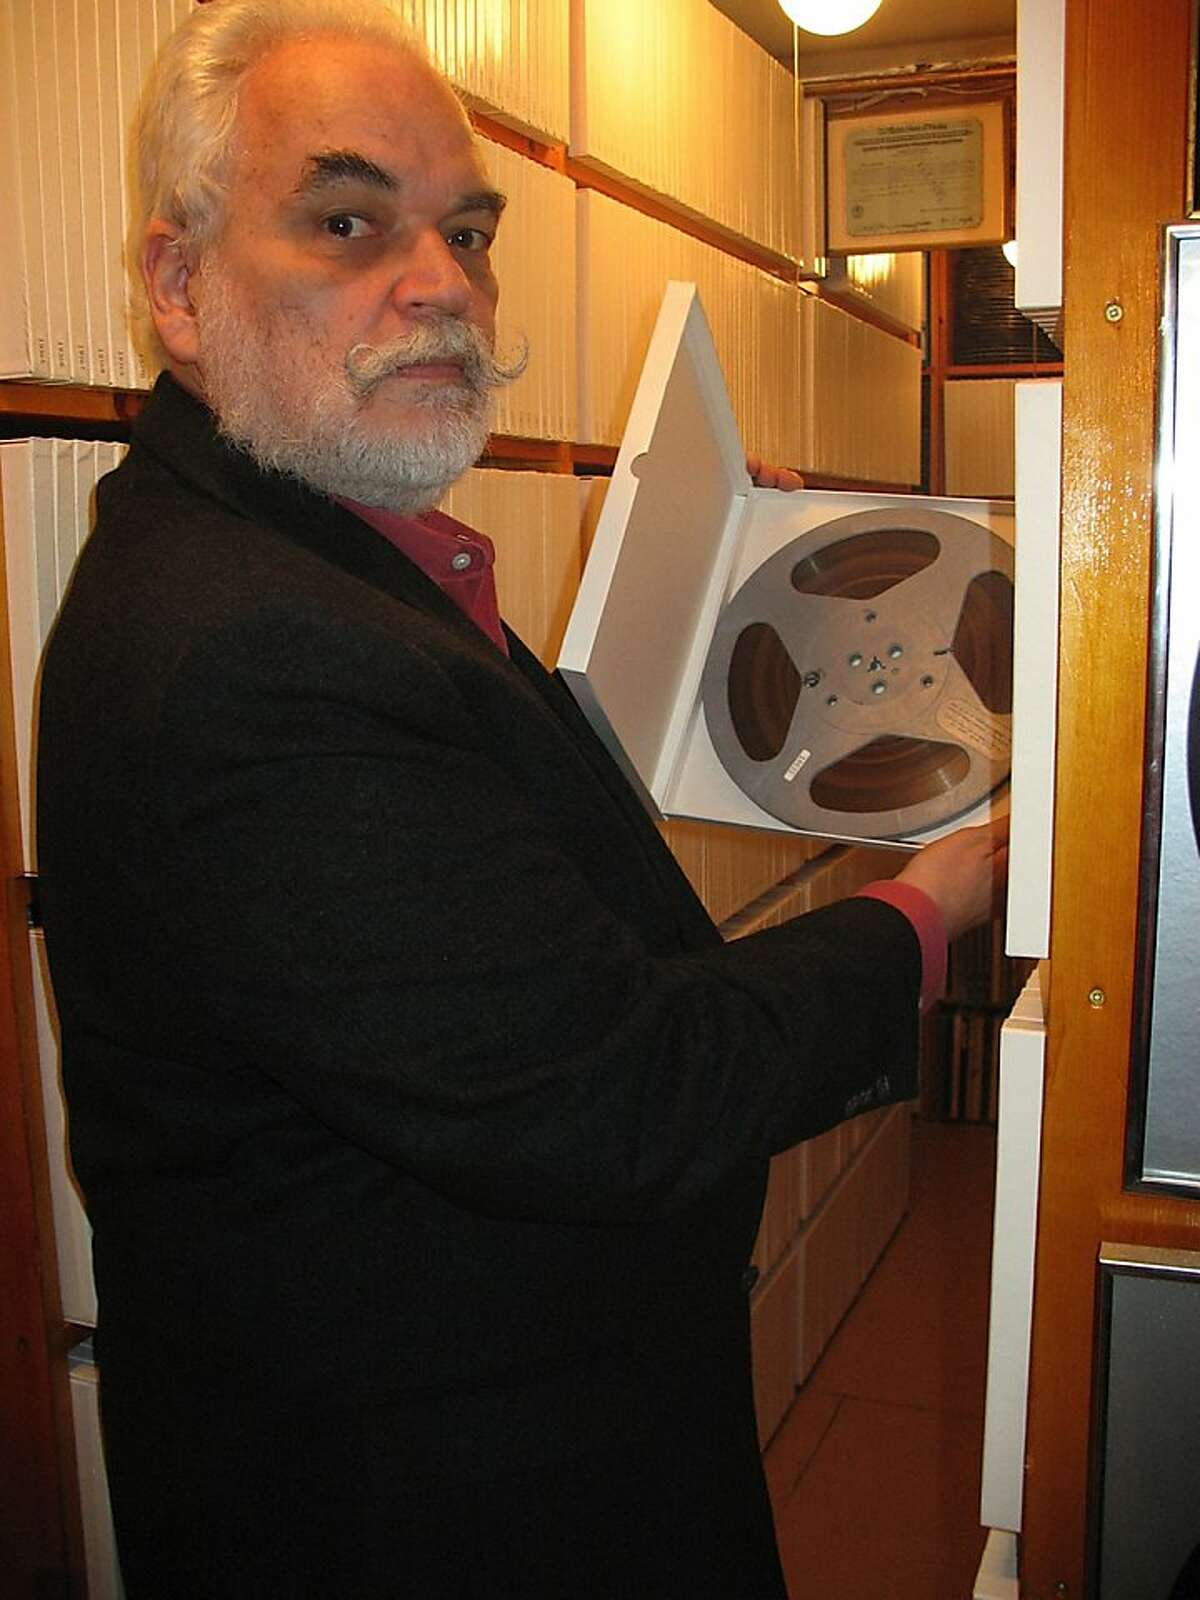 In this photo taken Monday, April 30, 2012, J. David Goldin, shows his radio collection in Sandy Hook, Conn. Goldin, a retired radio engineer helped catch a thief stealing recordings from the National Archives. J. David Goldin donated the recordings to the archives in the late 1970s. More than 30 years later, he helped catch the person selling them online. (AP Photo/Jessica Anne Gresko) Thank you, Jessica